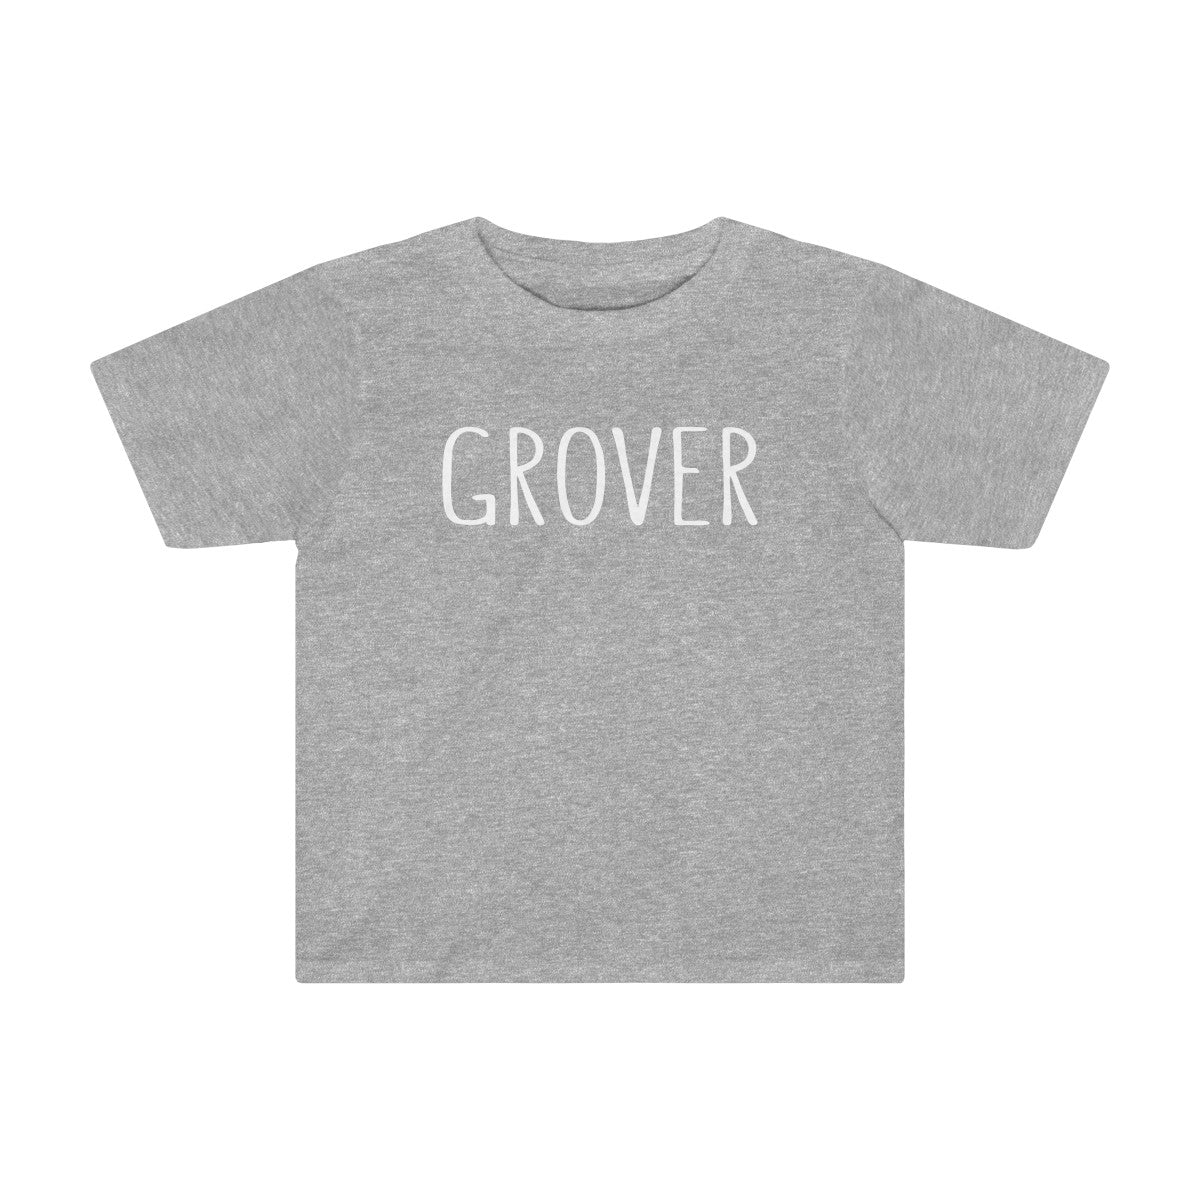 Grover Kids Tee - GoGannon Designs